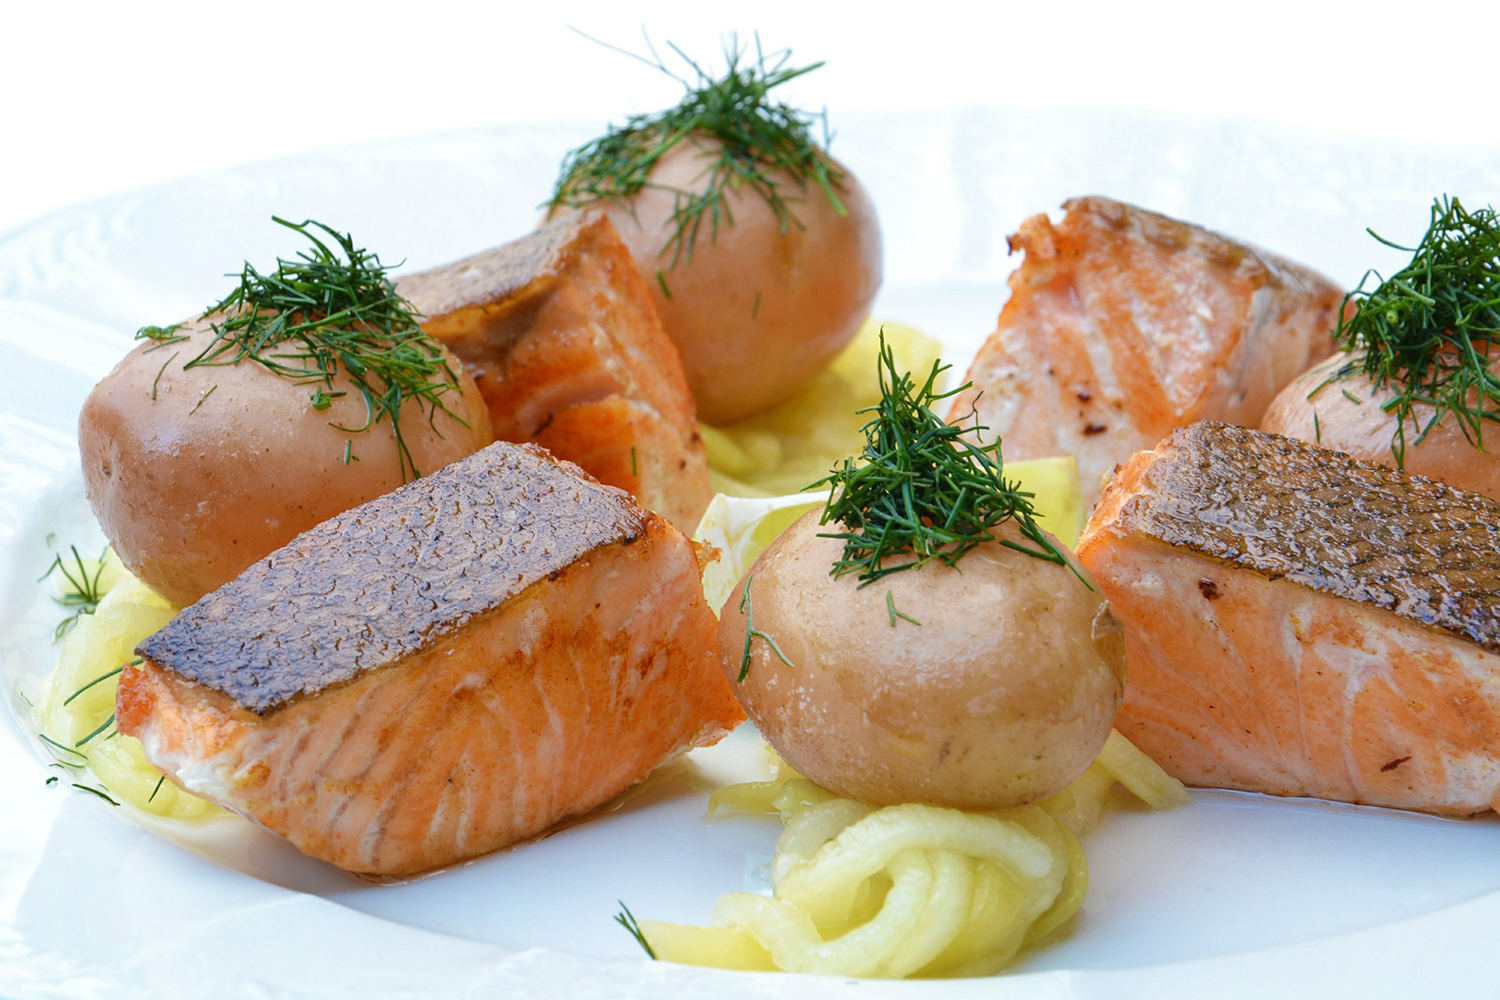 Healthy Meal Salmon and Potatoes